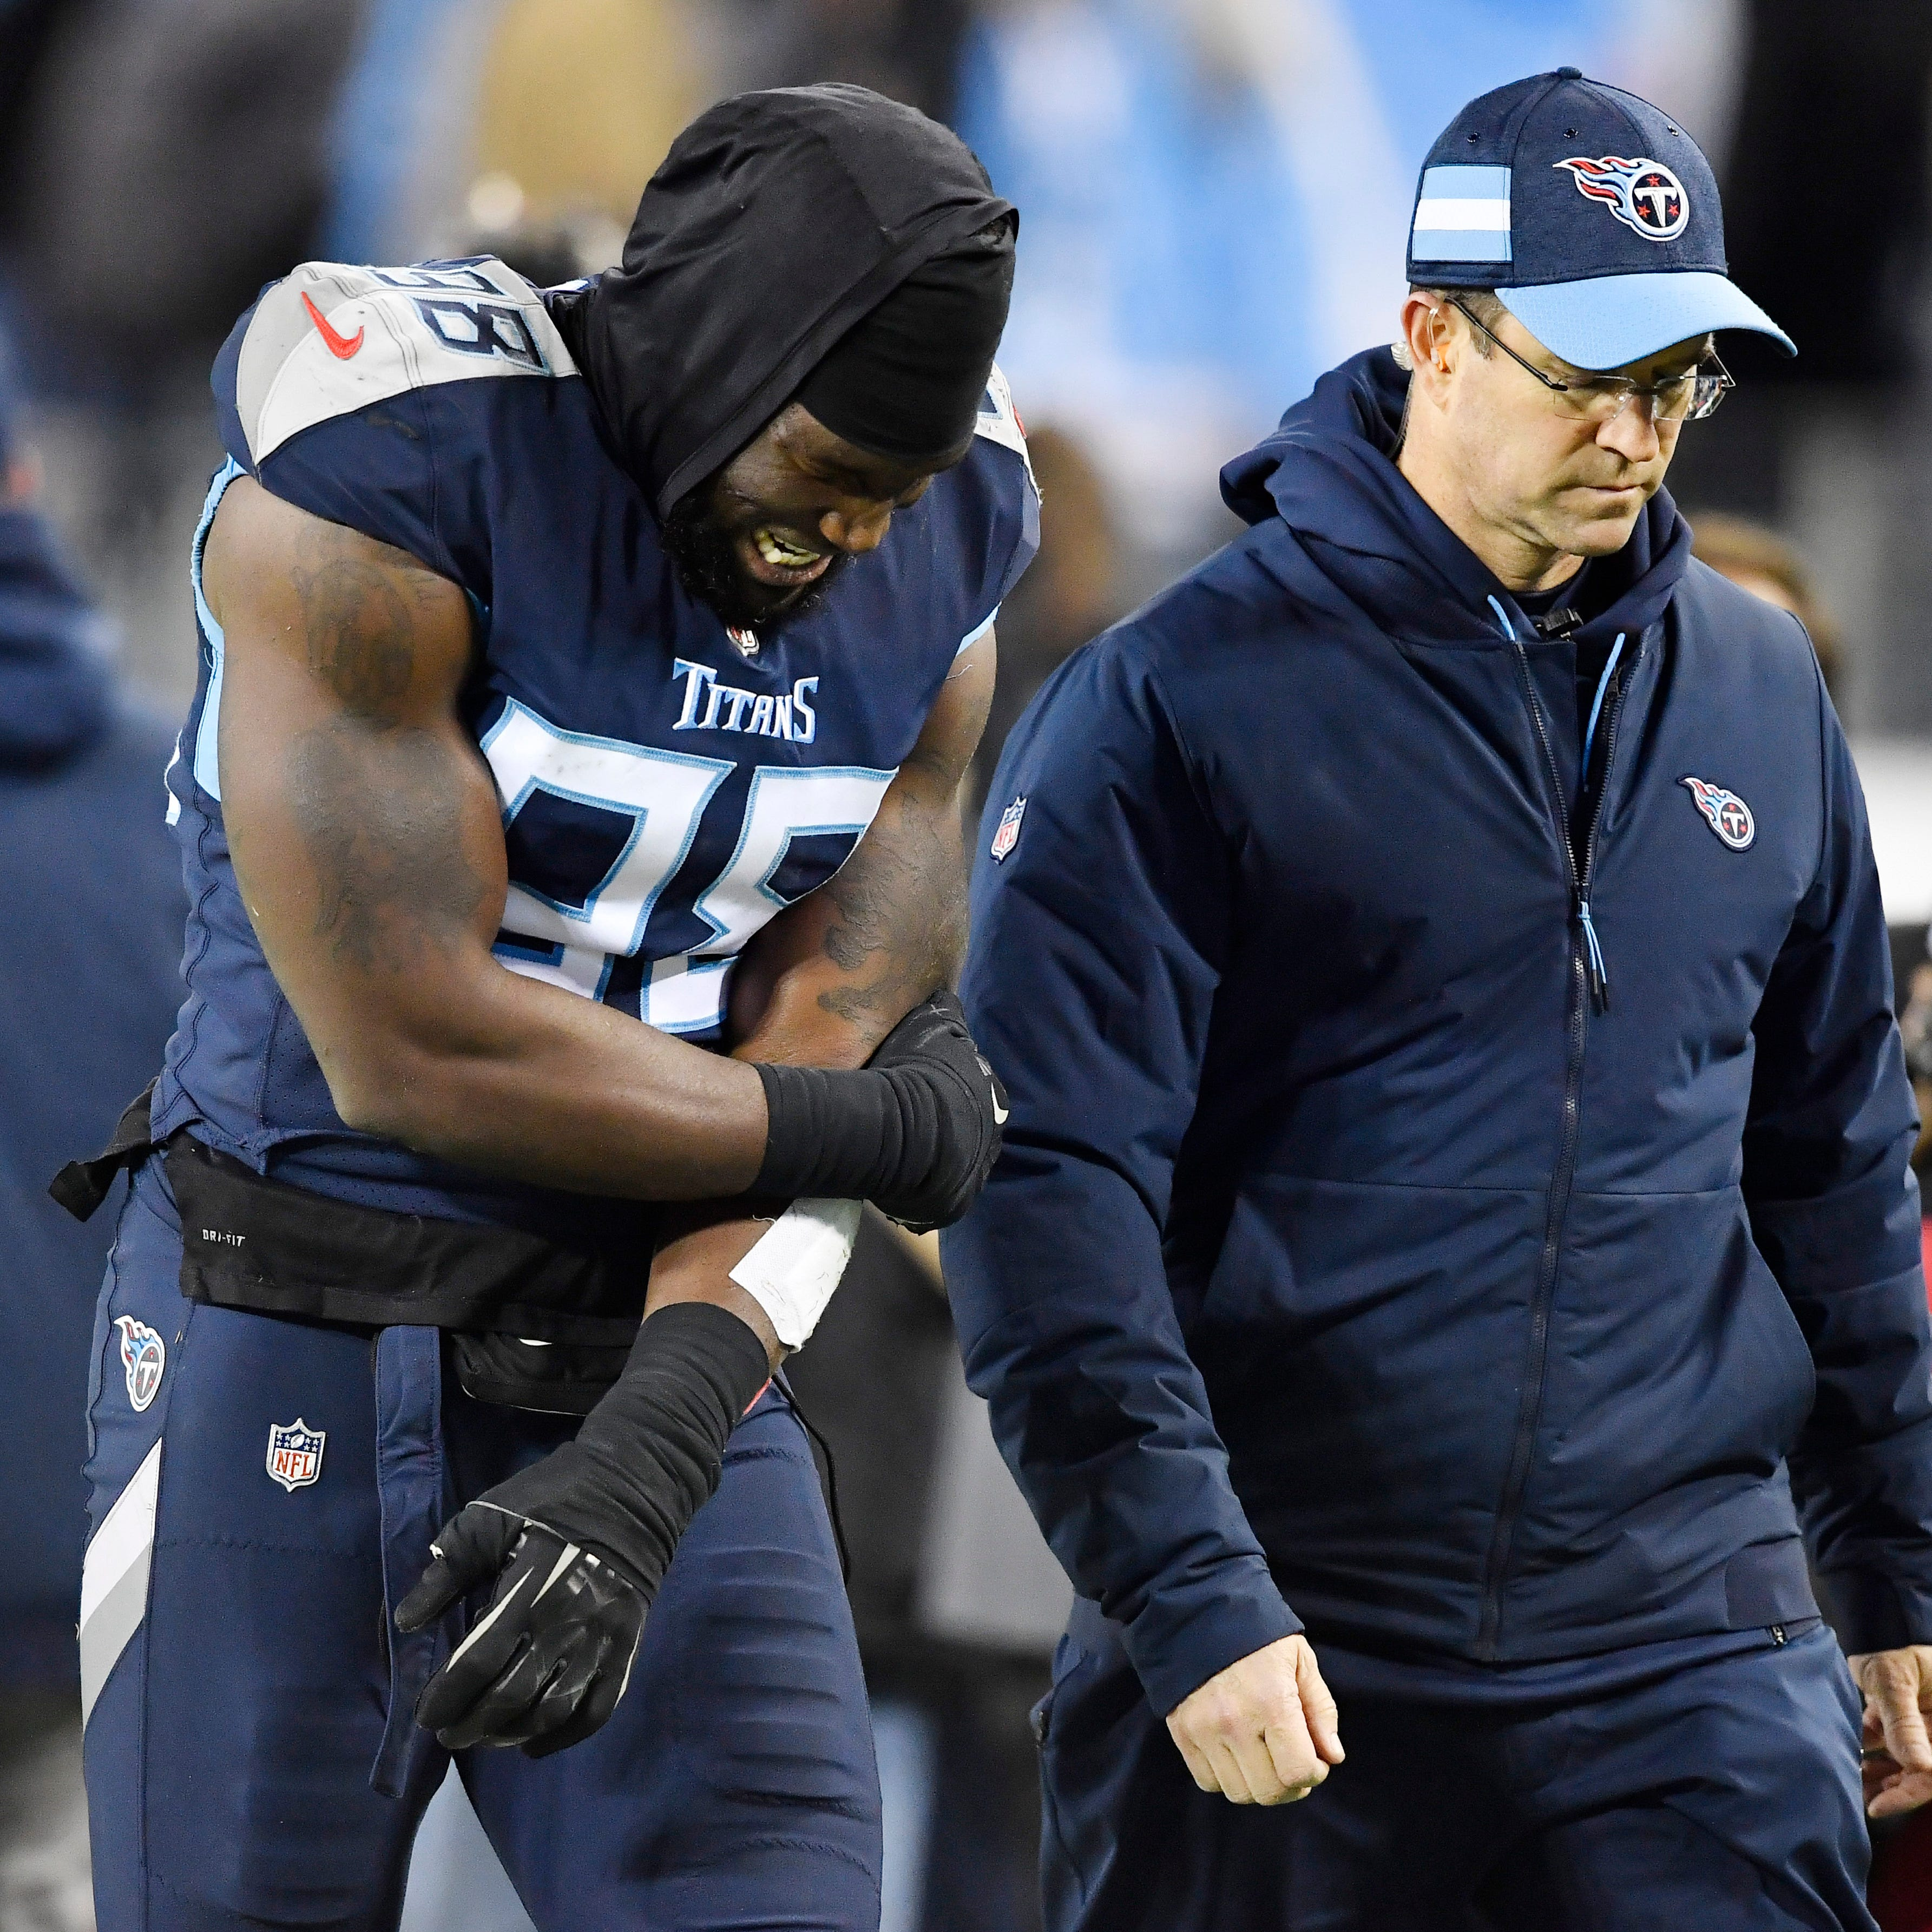 Titans: Orakpo, Fluellen out against Giants; Odell Beckham Jr. out for New York